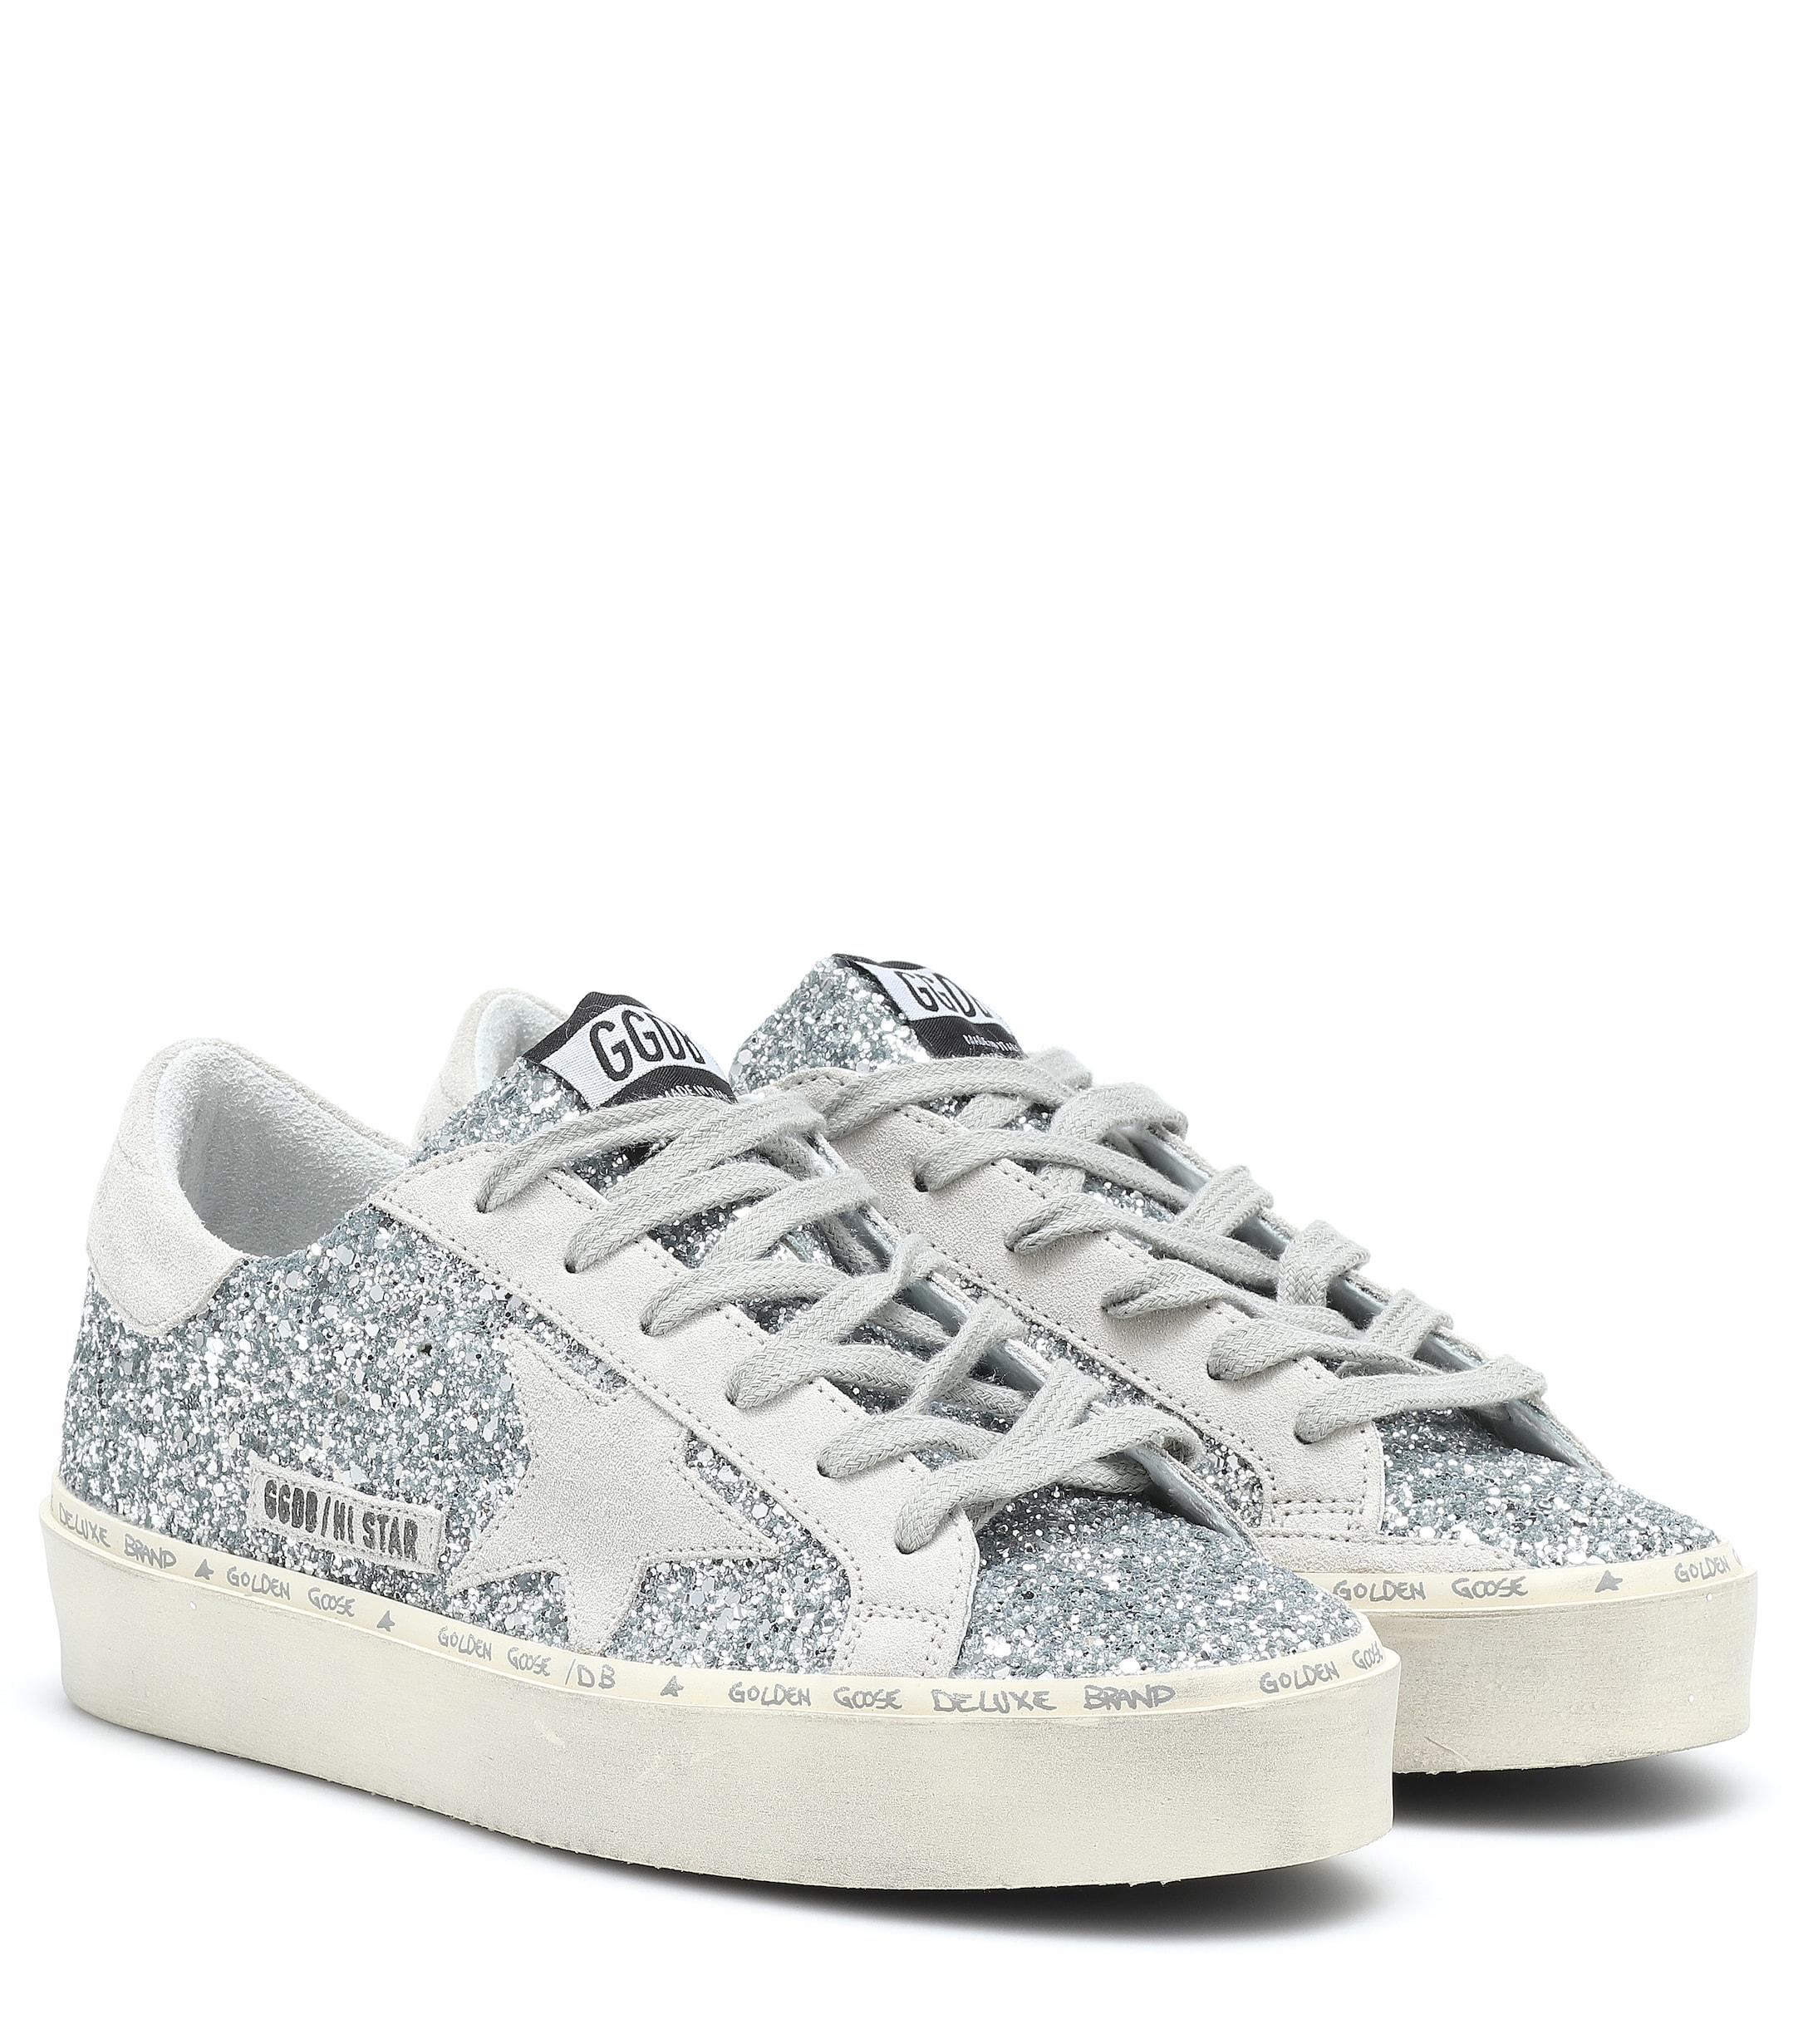 e4cd6f6911bf6 Lyst - Golden Goose Deluxe Brand Superstar Glitter Sneakers in Metallic